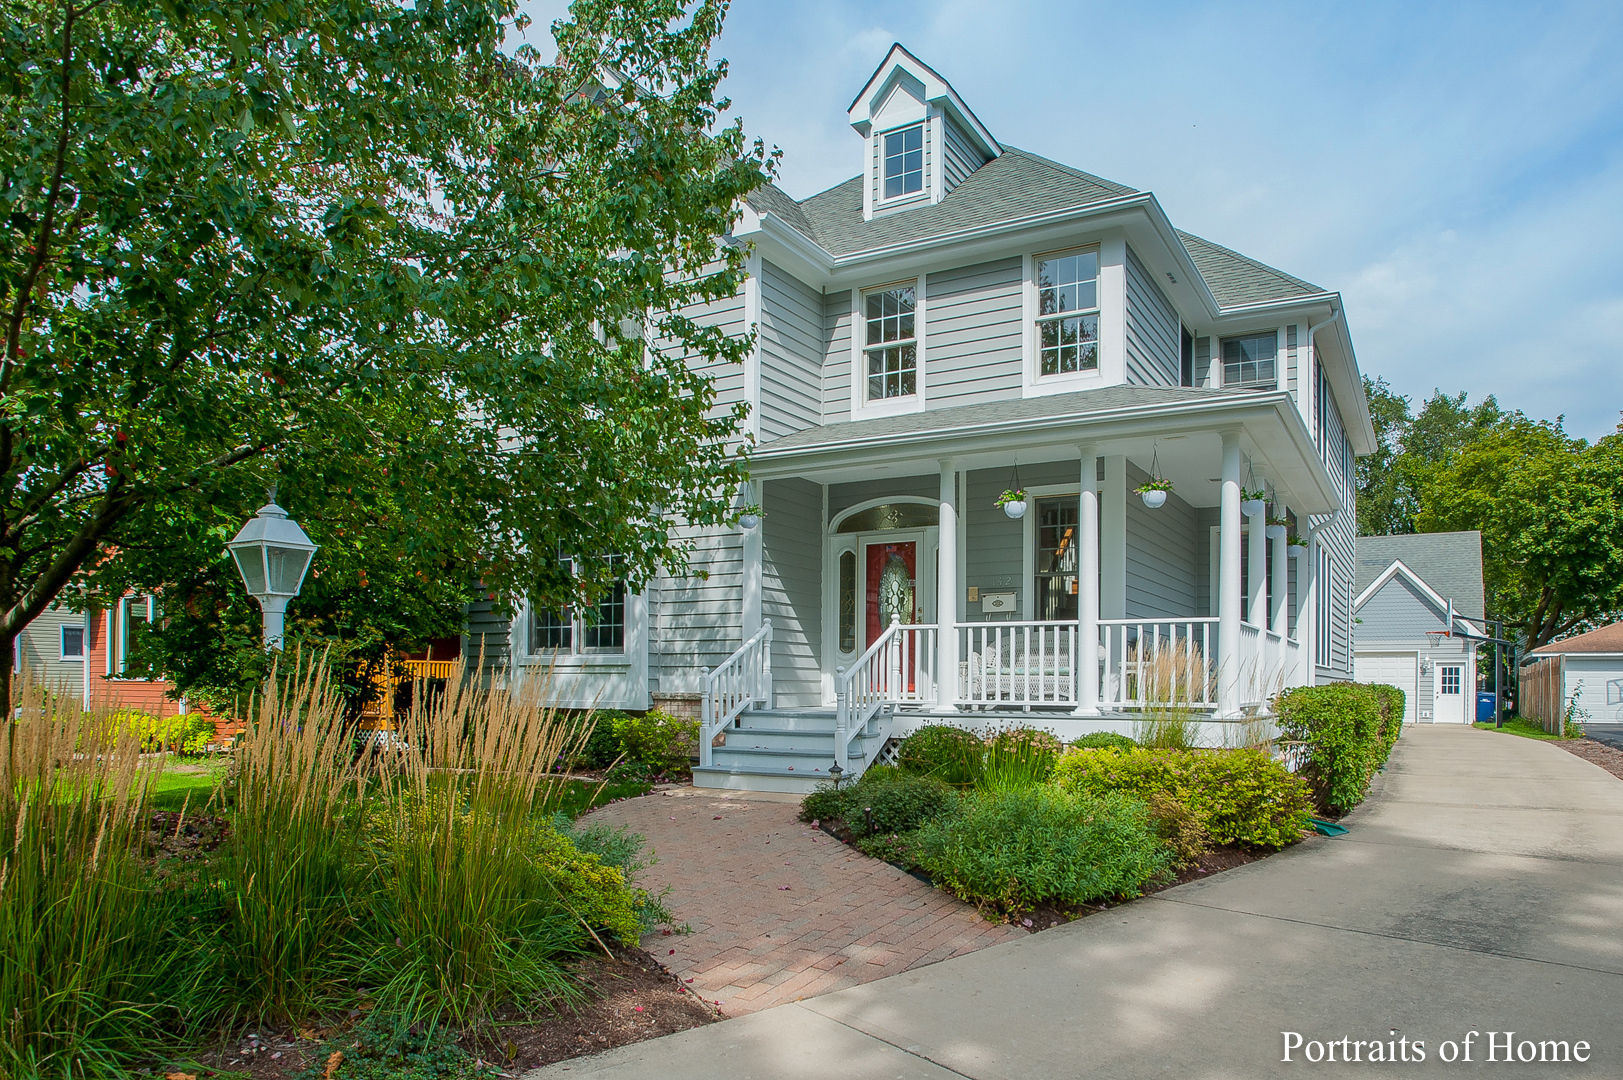 Spectacular custom built home in Lombard's finest neighborhood, walking distance to Metra/Downtown Lombard, Parkview School, walking paths and parks.  Main level featuring a custom kitchen with new stone countertops, stainless appliances and massive island that opens to large eating area and awesome 2 story family room with fireplace. Beautiful living room and separate formal dining room, main level den and laundry room. Second level with 4 large bedrooms, master bedroom with vaulted ceiling, cedar walk-in closet and new updated master bath with separate shower and tub. Ginormous finished basement with terrific rec area separate workout room and full bath. Beautifully landscaped yard features brick paver patio and gazebo. 3 car detached garage with finished office on 2nd level with hardwood flooring and HVAC. Newer: Generac generator, two tank hot water heater system, furnace, central vac, washer and dryer, kitchen appliances, kitchen lighting and countertops, master bath, Wifi smart t